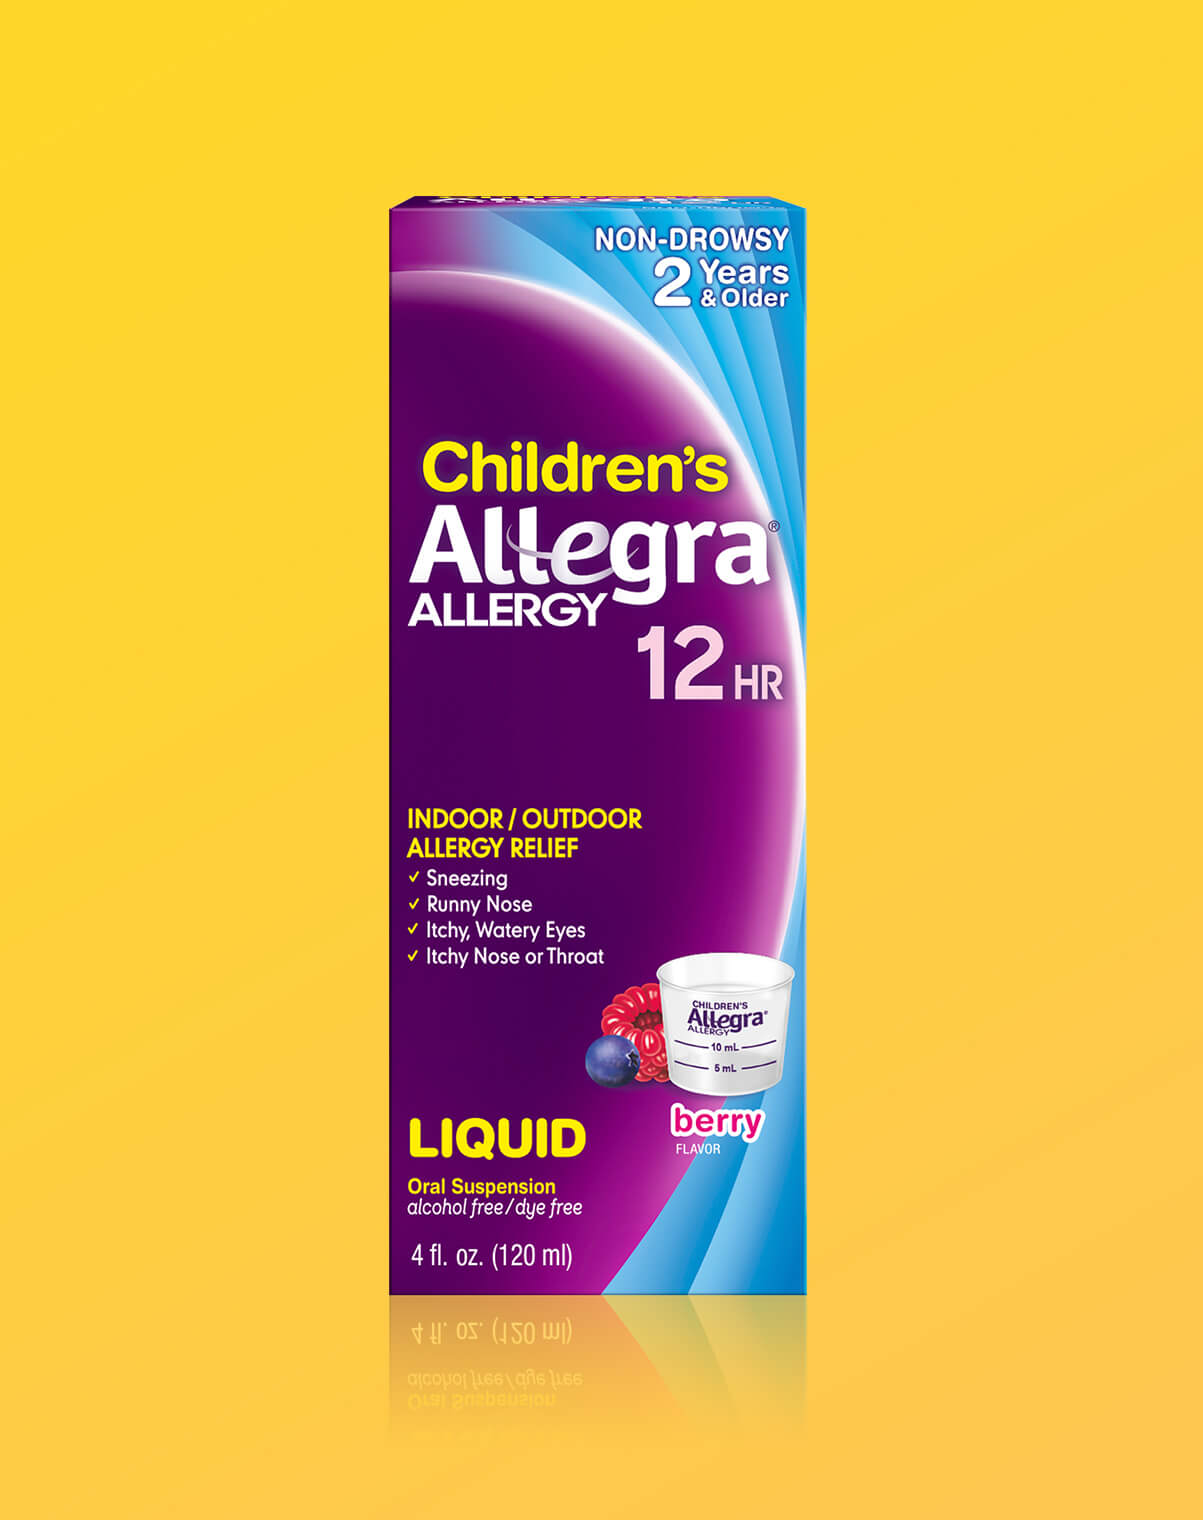 Children's Allegra Liquid